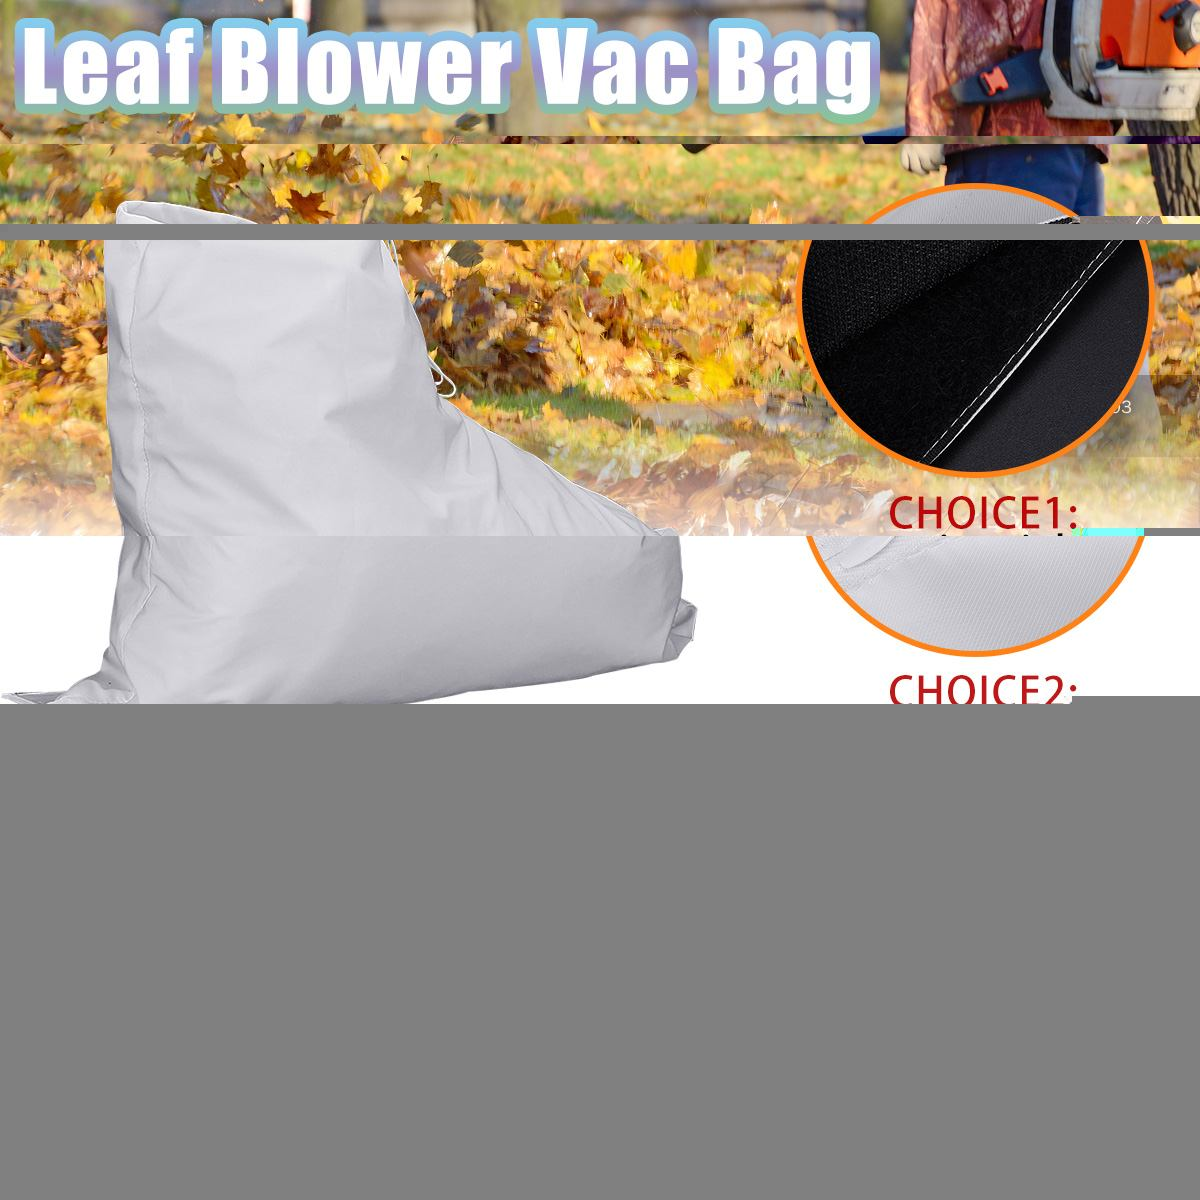 Velcro/Zipper Type Leaf Blower Vacuum Bag Fit For Weed Eater Barracuda 2595 Type 1 Lawn Yard Shredder Garden Tool Storage Bag